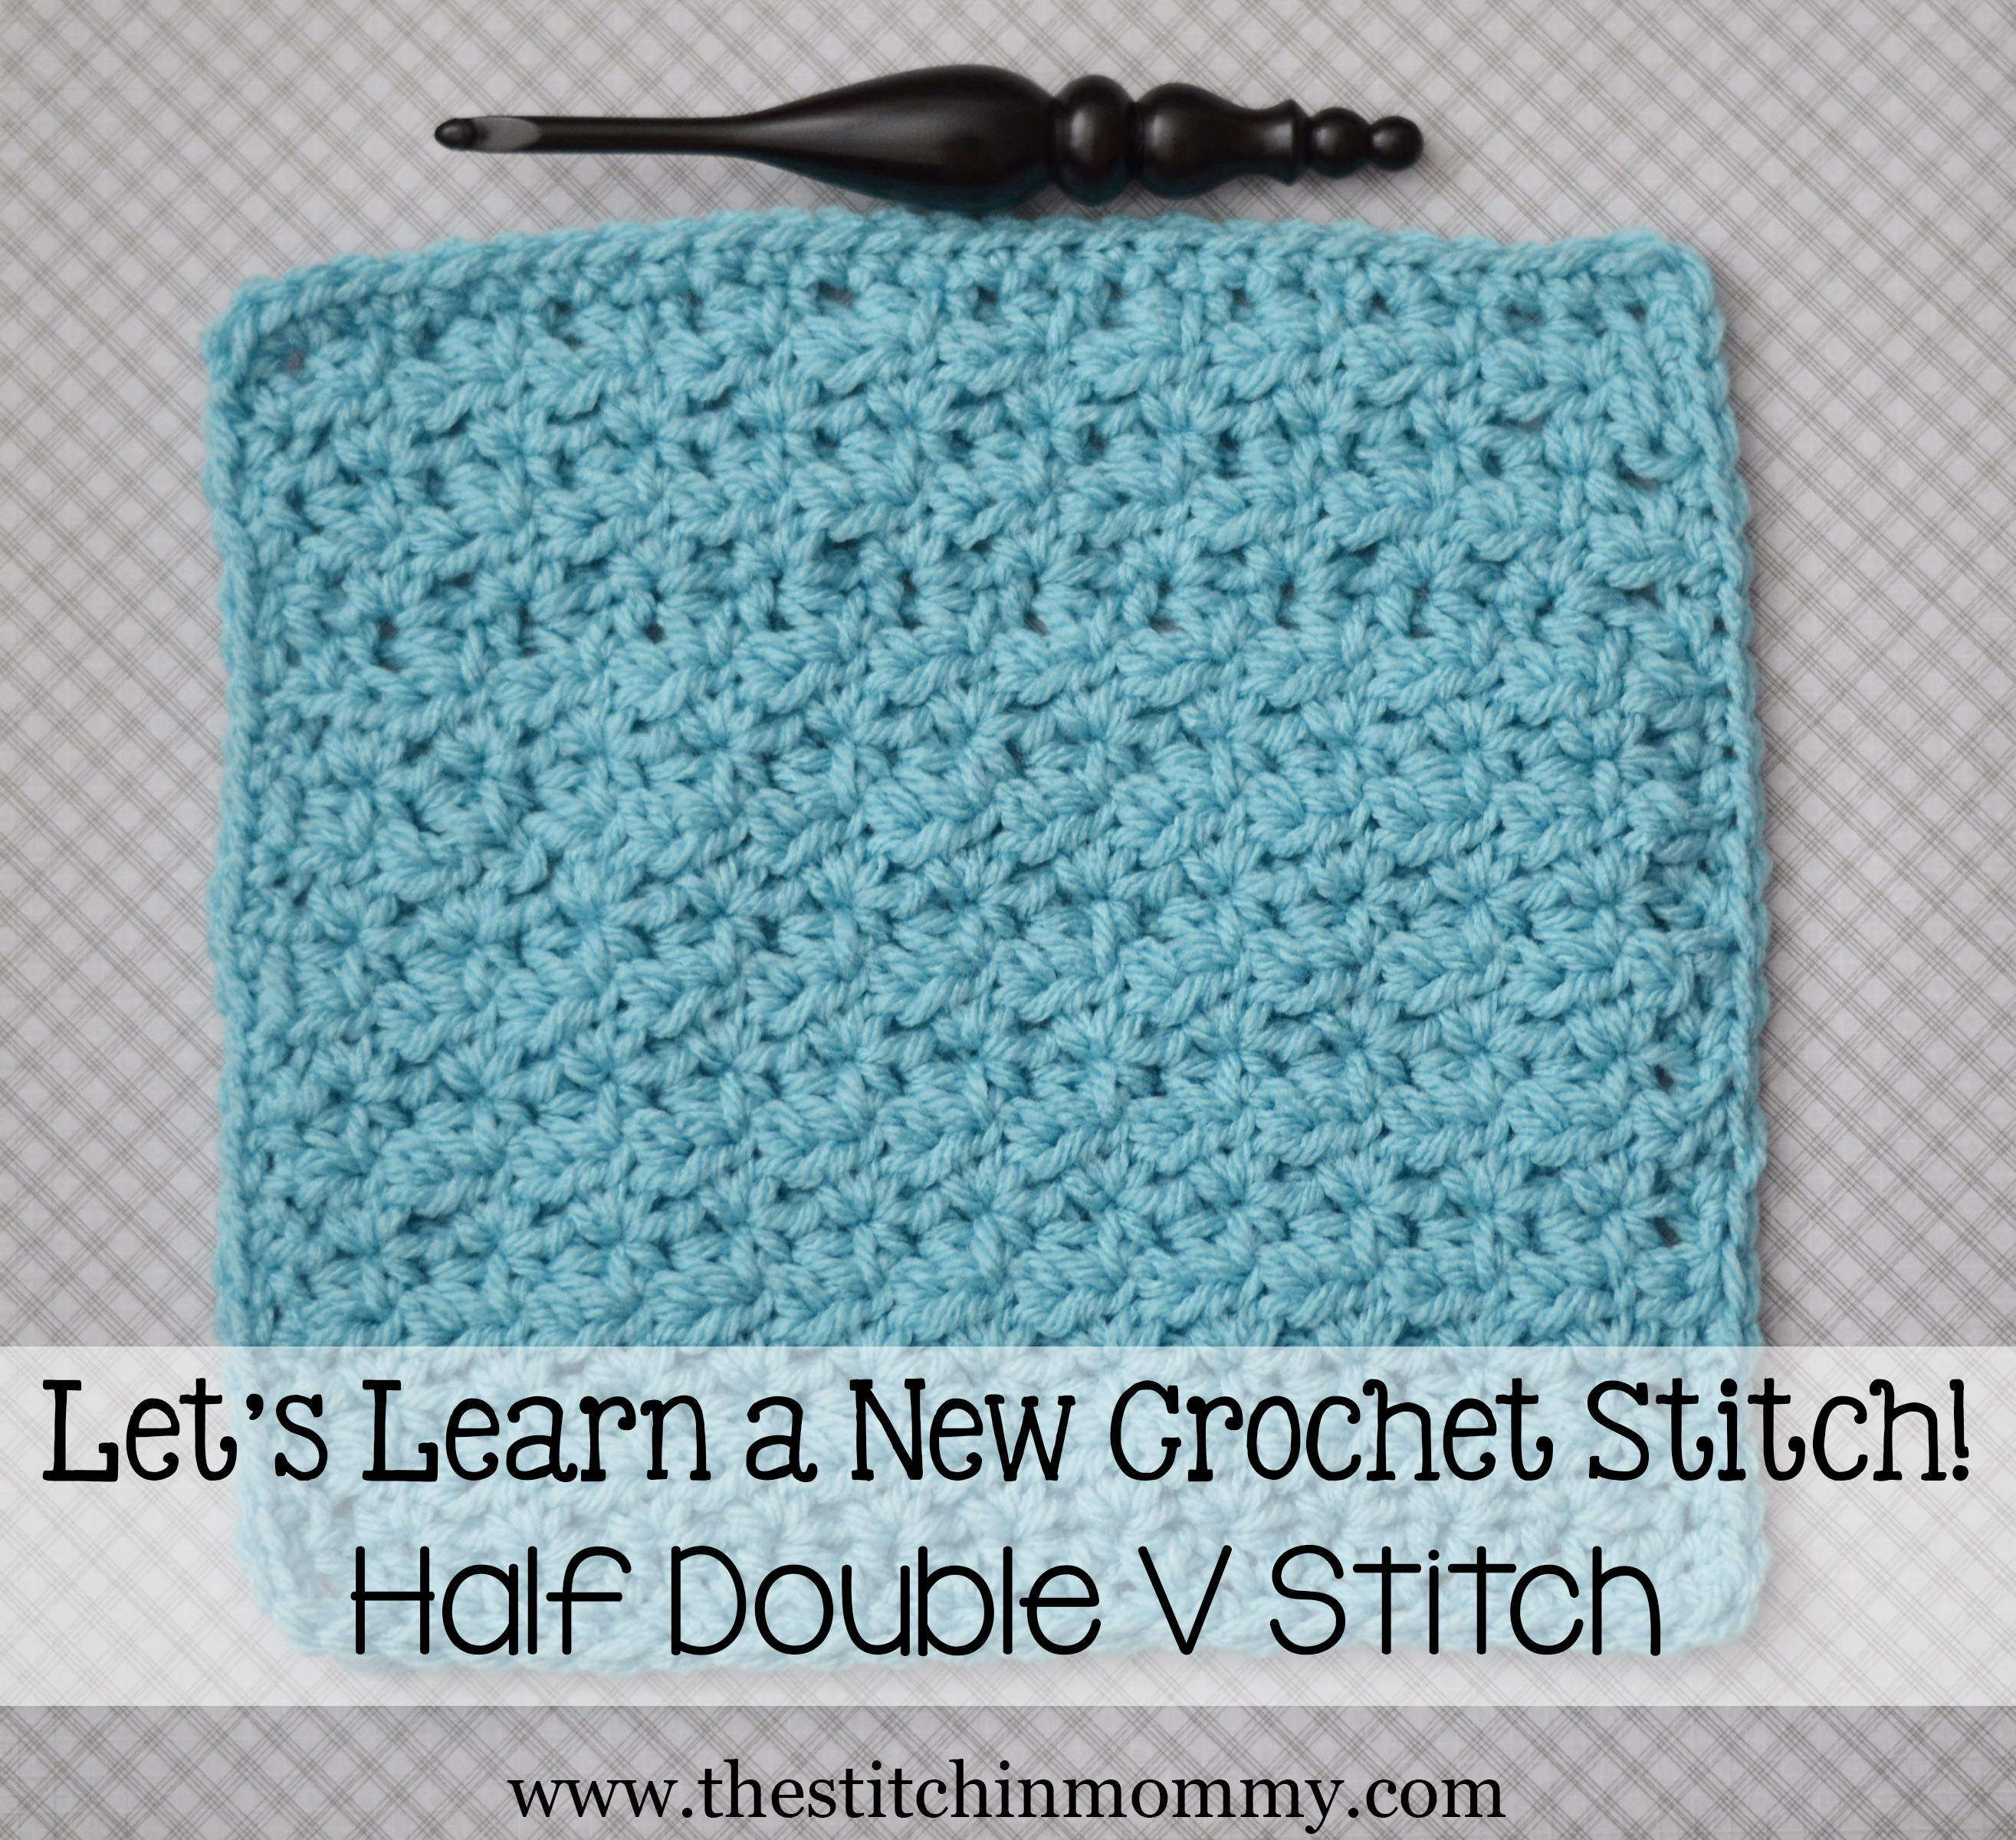 Beautiful Half Double V Stitch Tutorial and Afghan Square New Crochet Stitches Of Adorable 47 Photos New Crochet Stitches